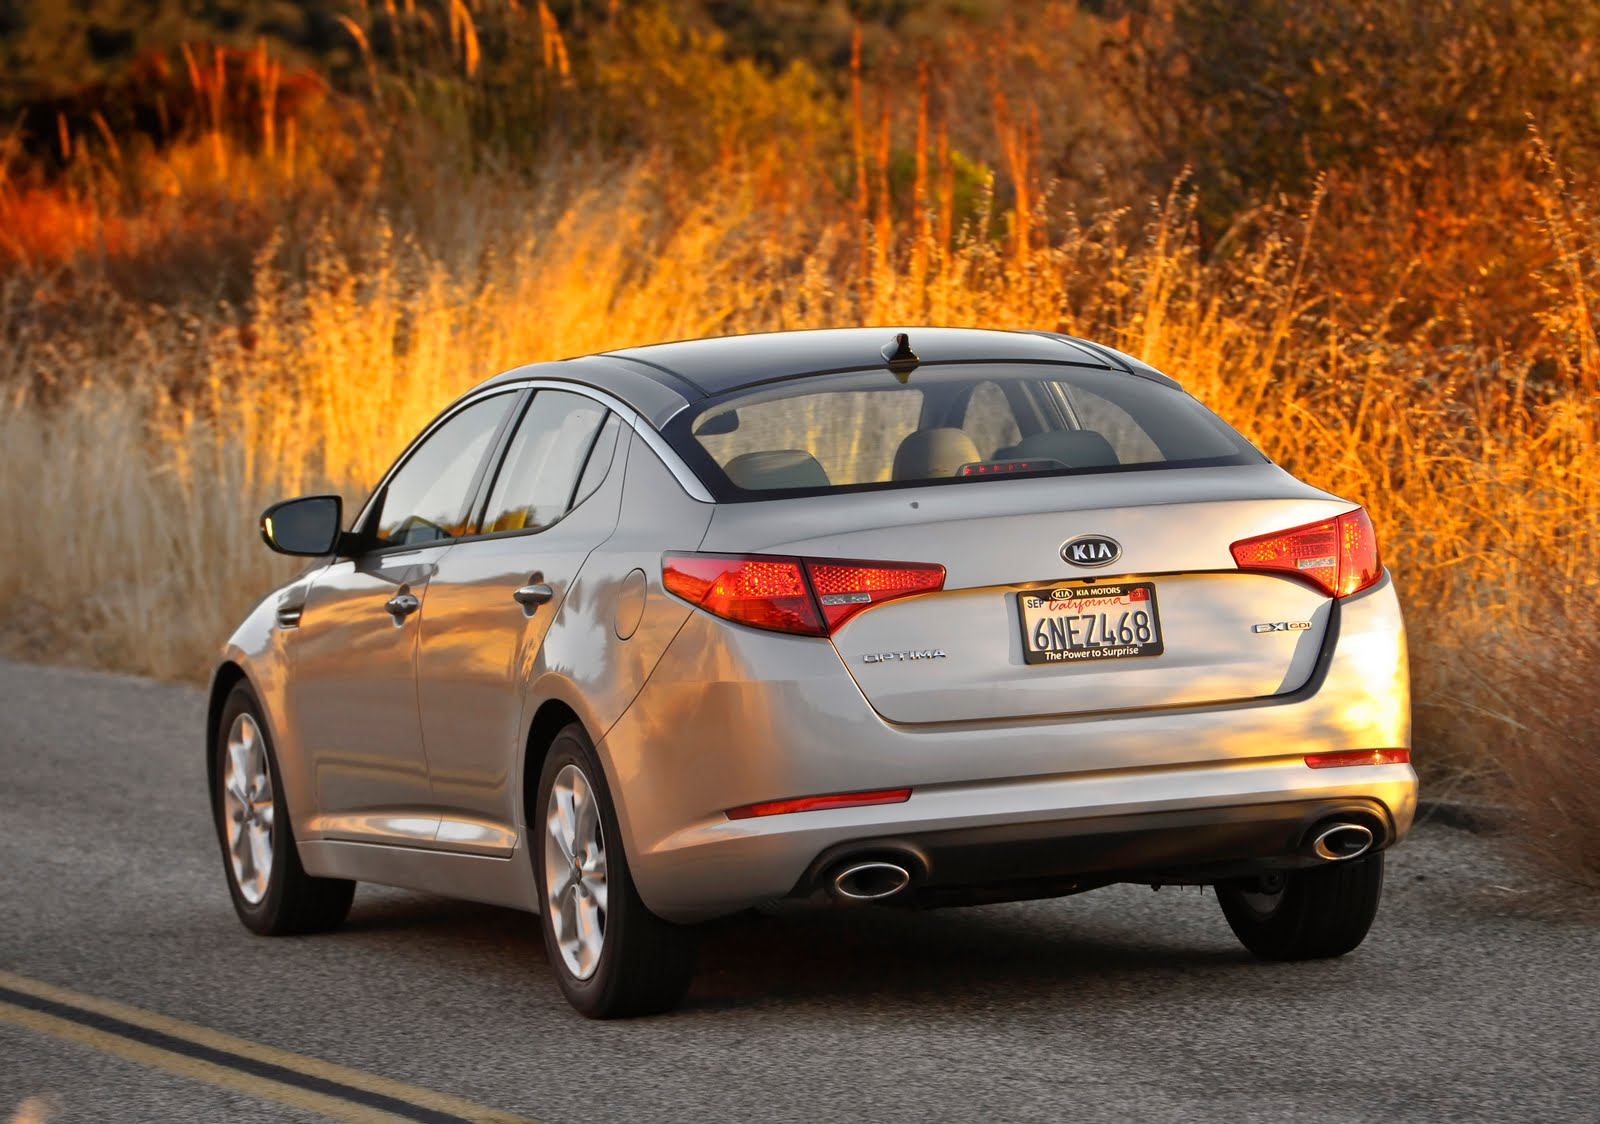 new and modern cars: 2011 Kia Optima Officially Launched in the US